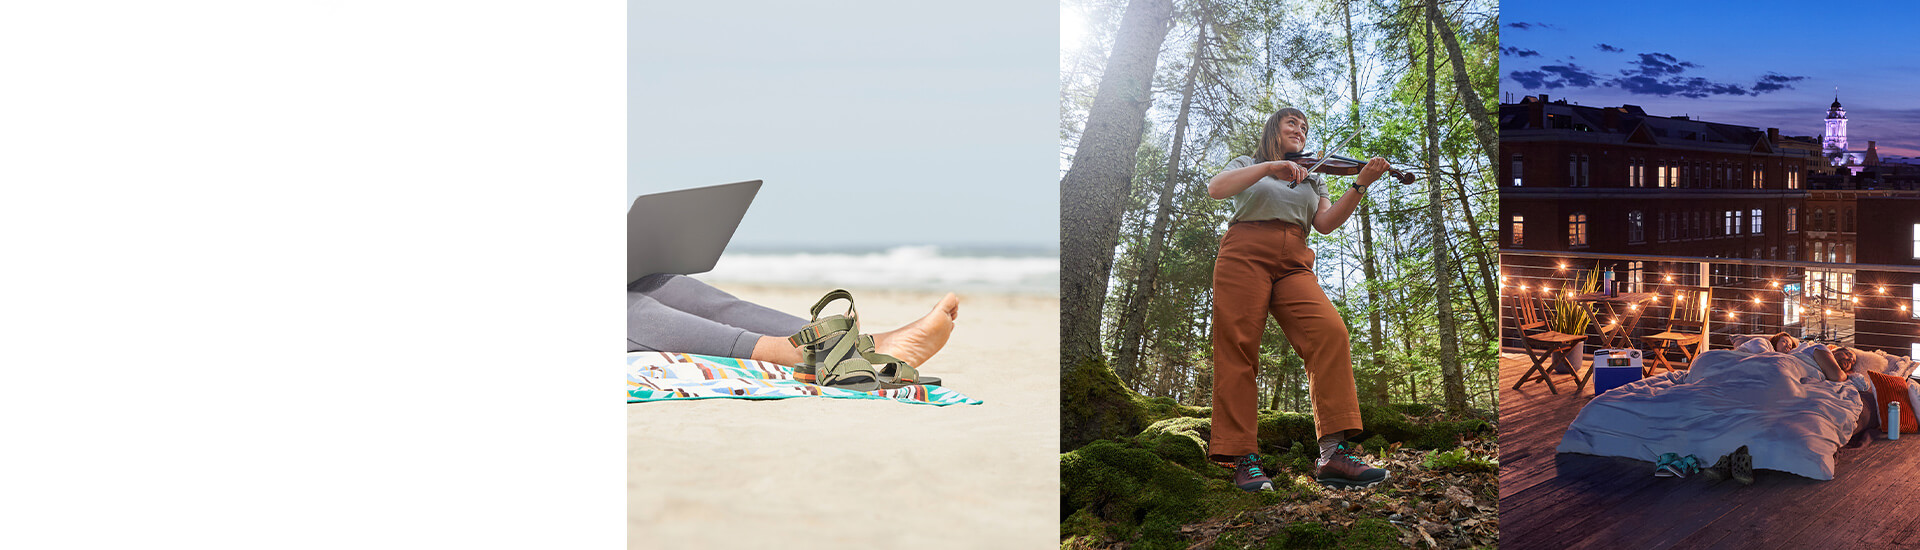 Collage: people work, sleep and play outdoors.